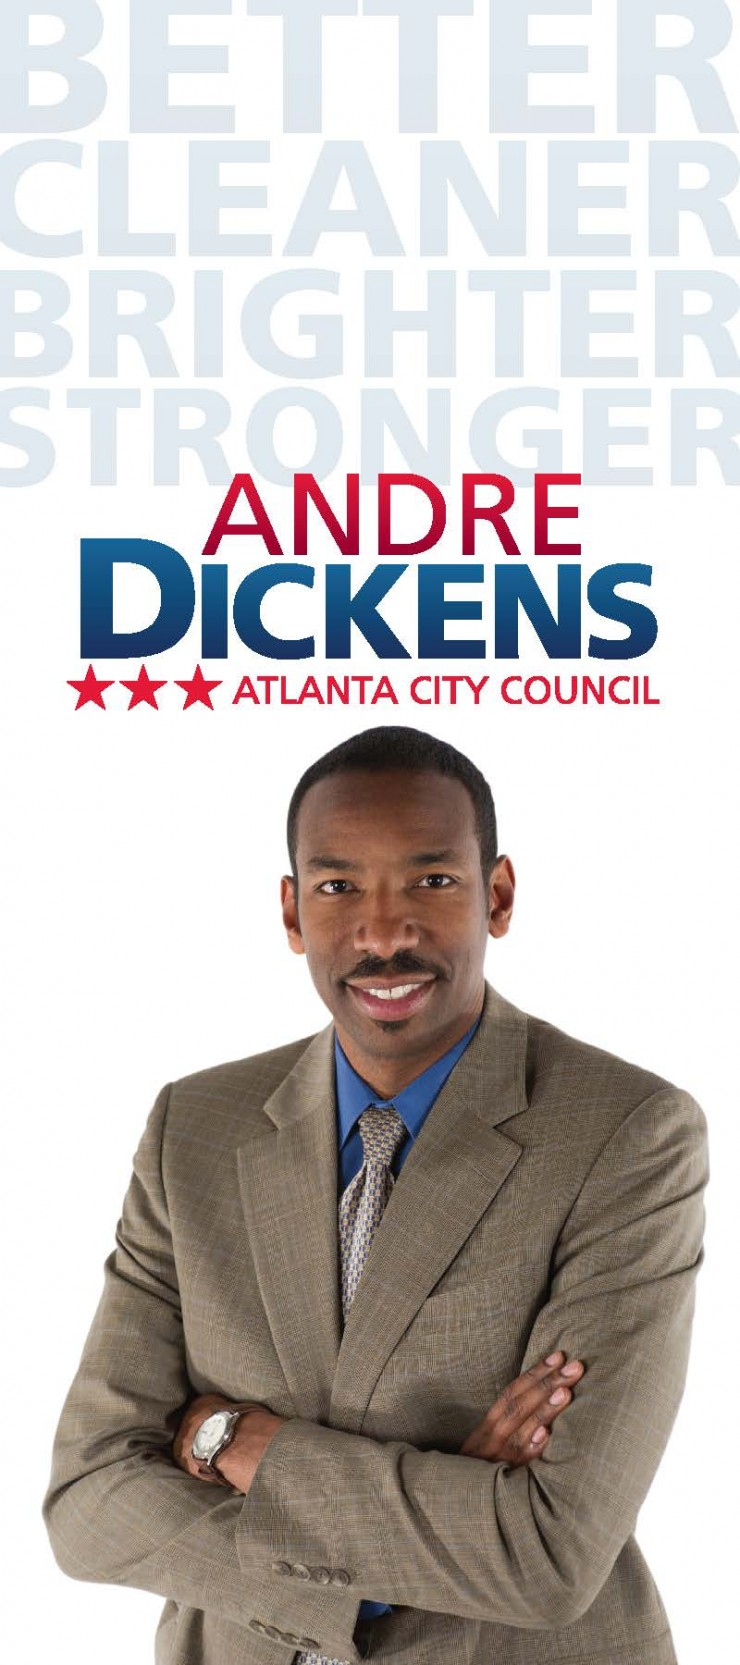 Andre Dickens